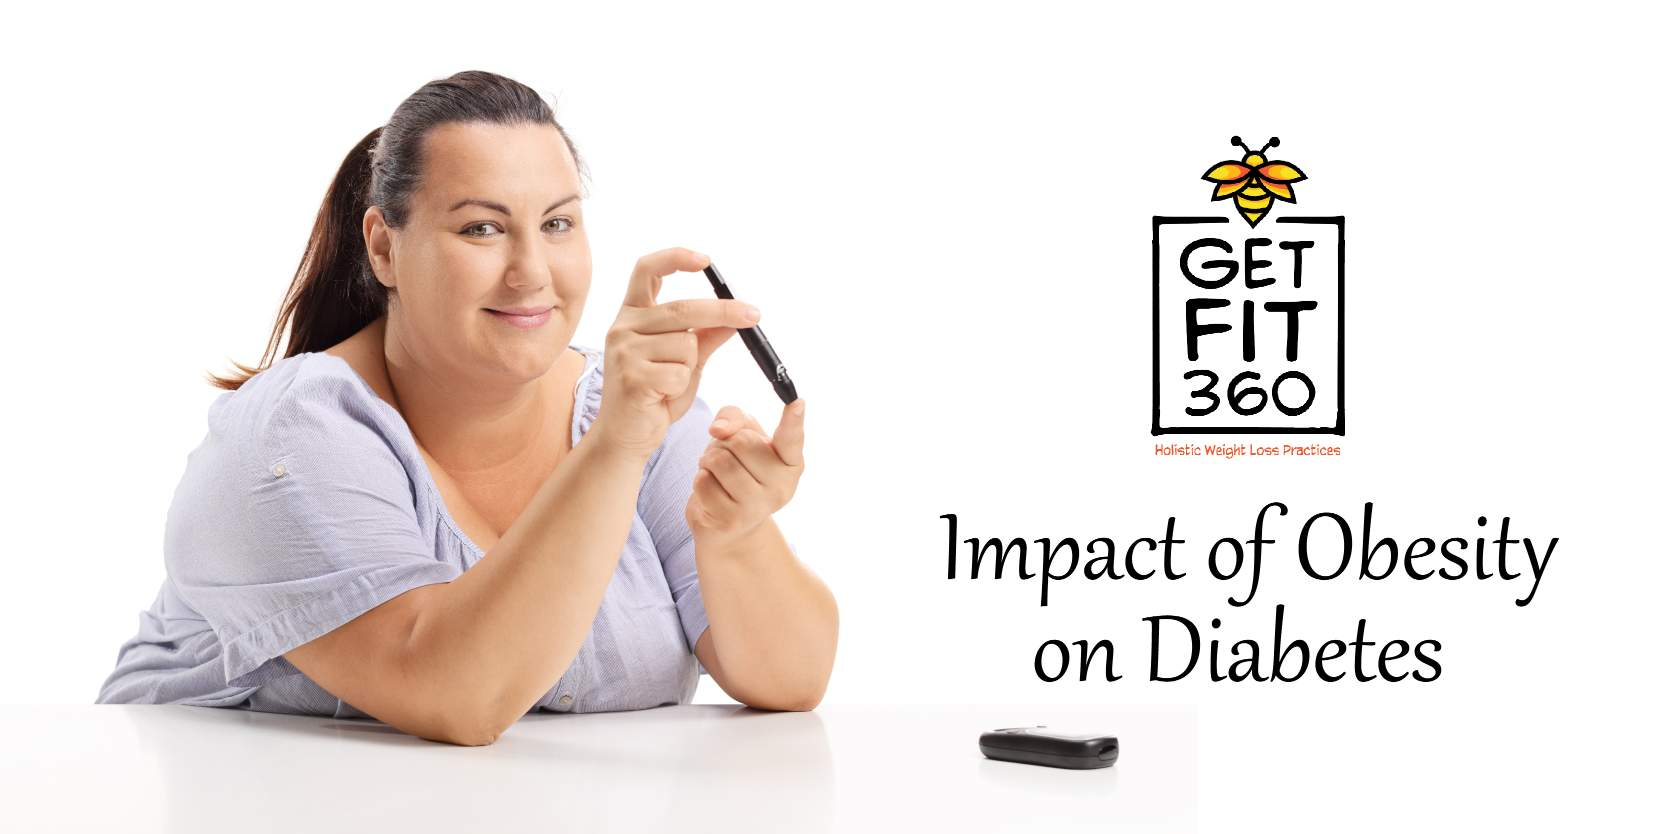 Lady checking her sugar levels using a diabetic monitor